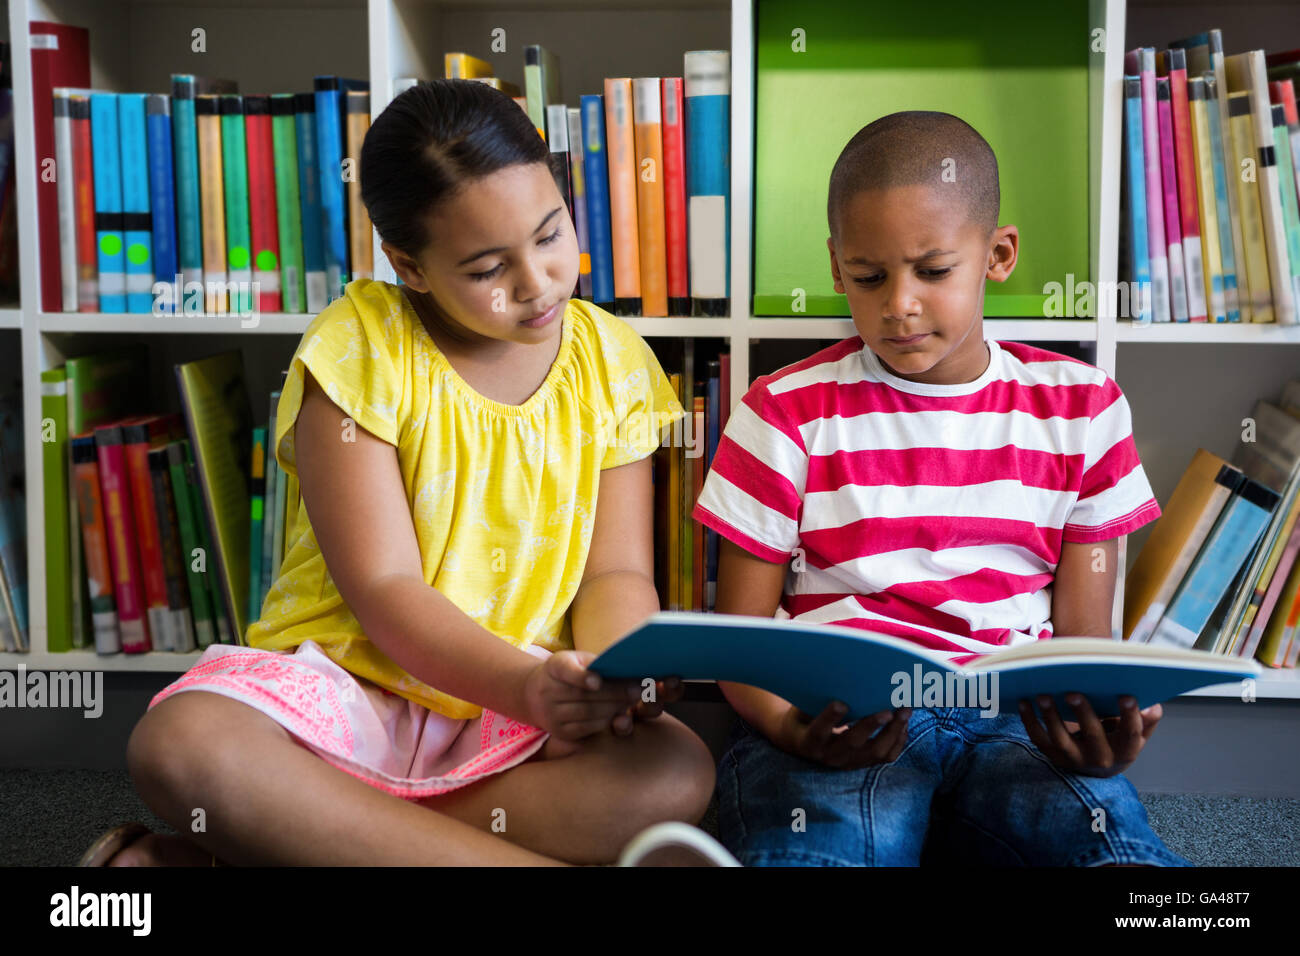 Elementary students reading book at library in school - Stock Image